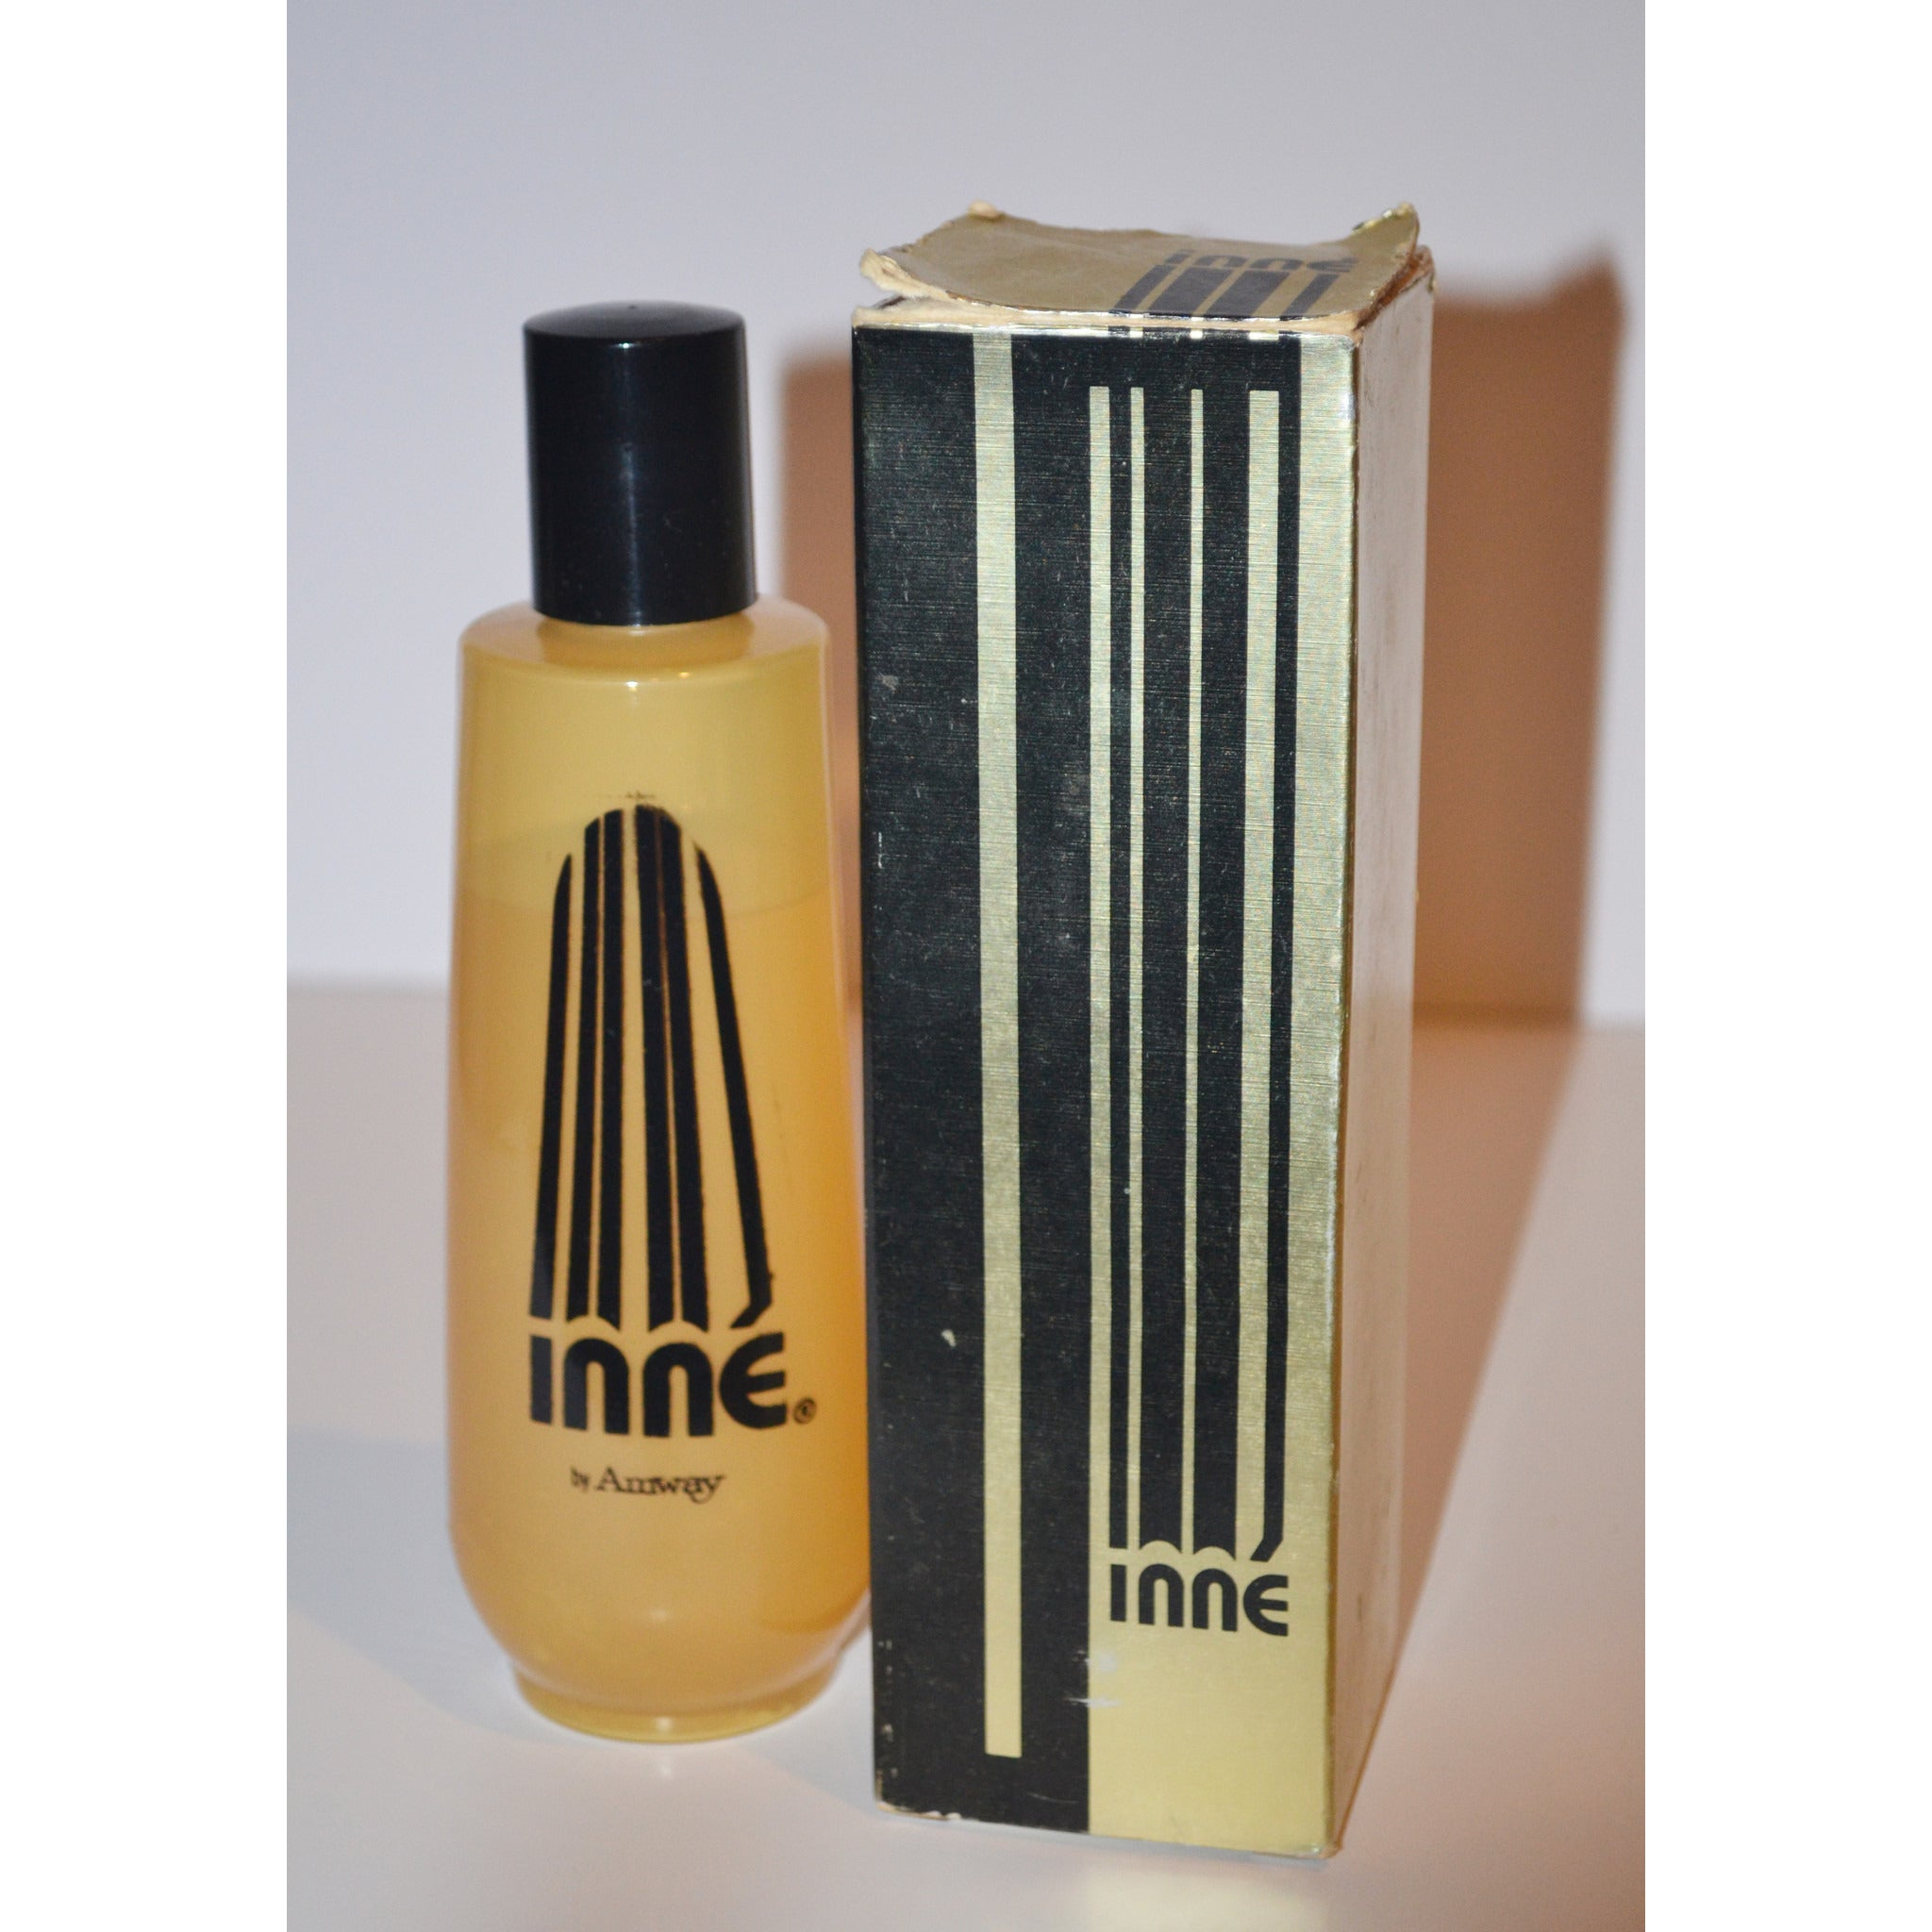 Vintage Inne Body Splash By Amyway